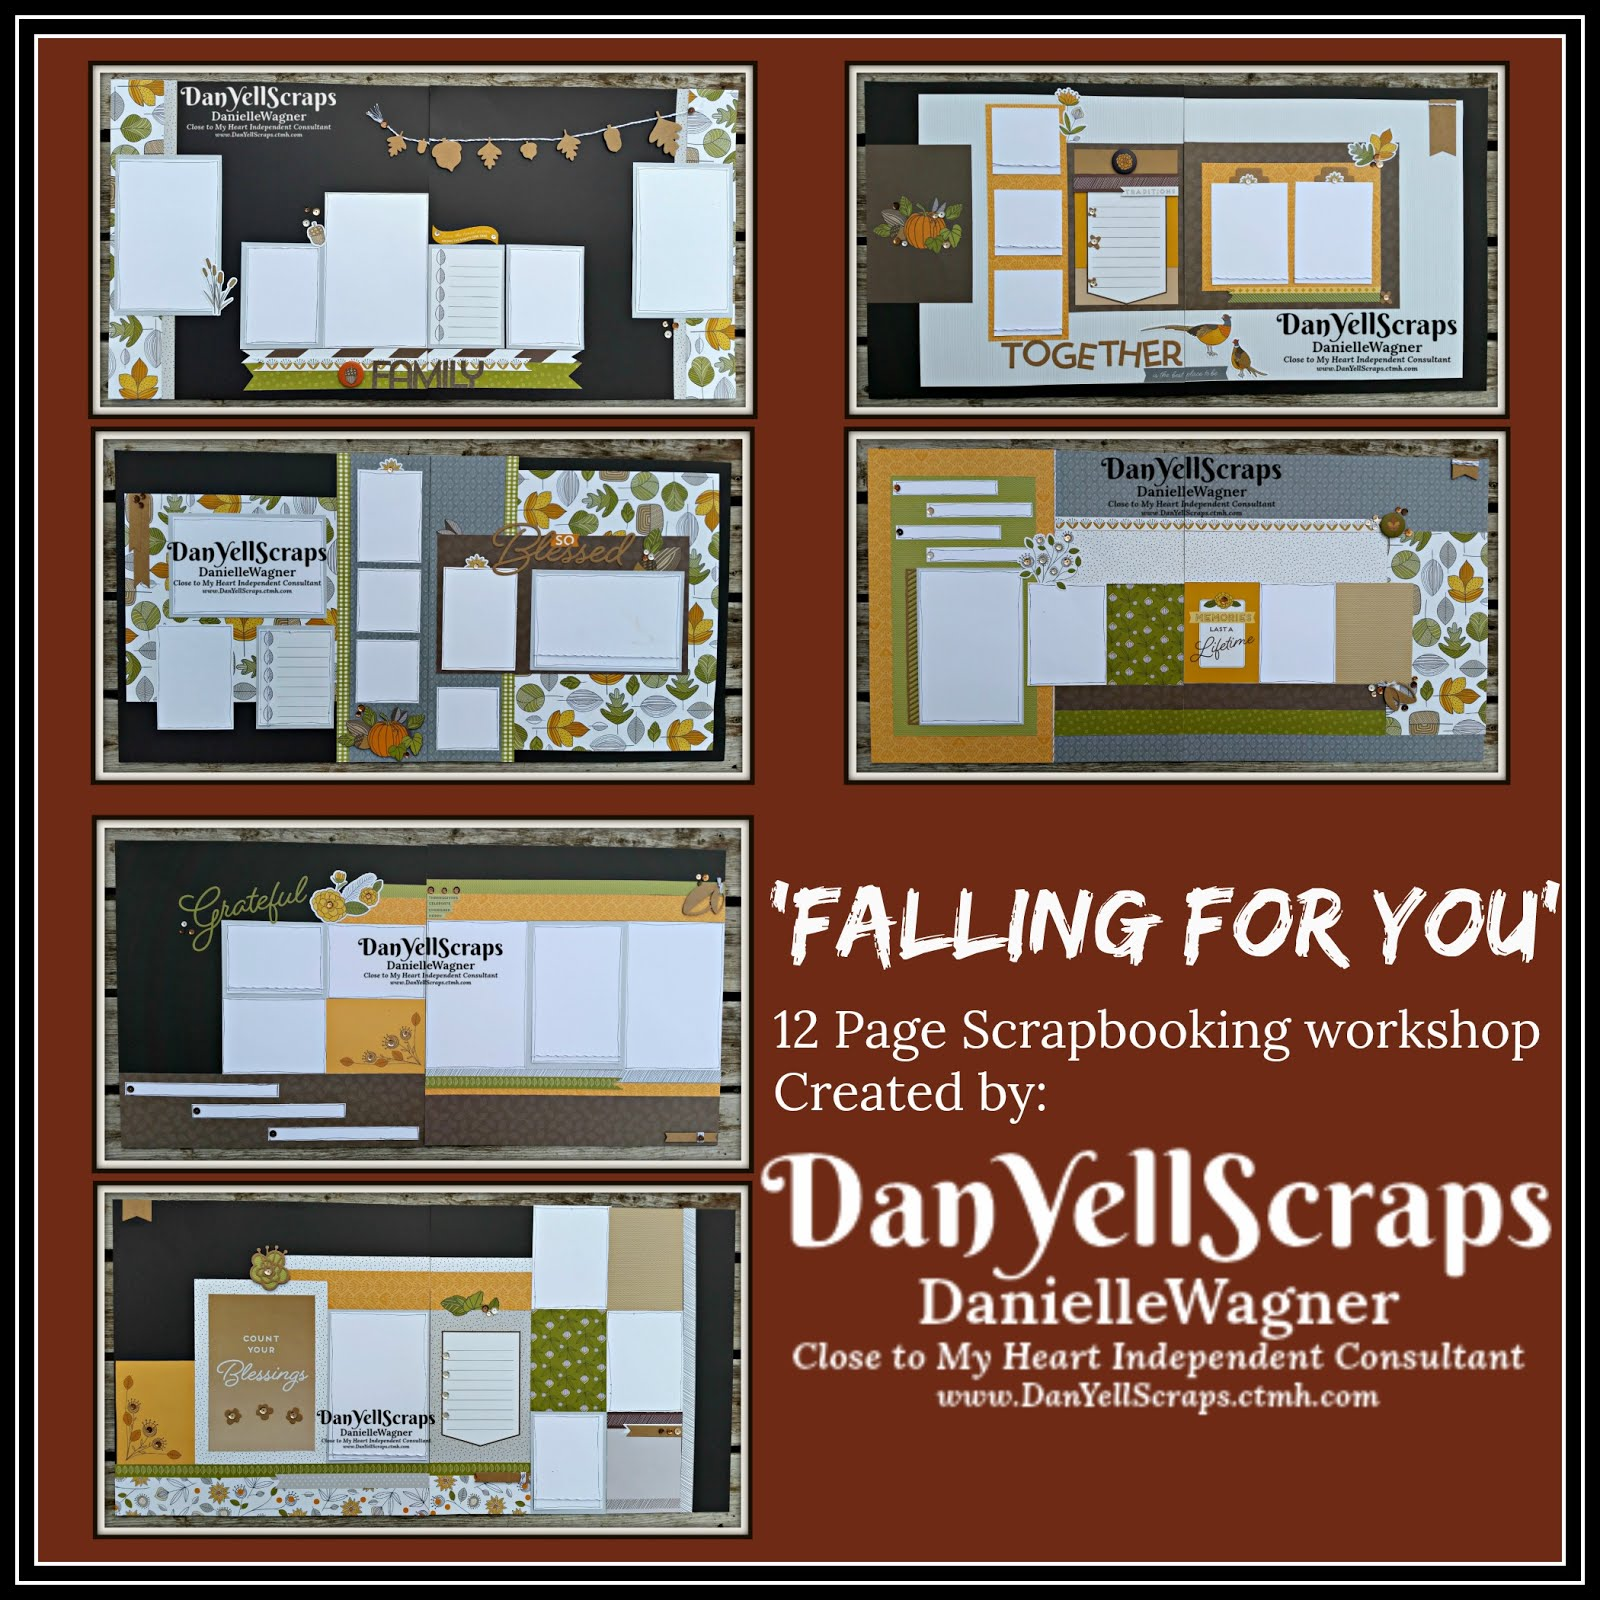 Falling For You Scrapbooking Workshop